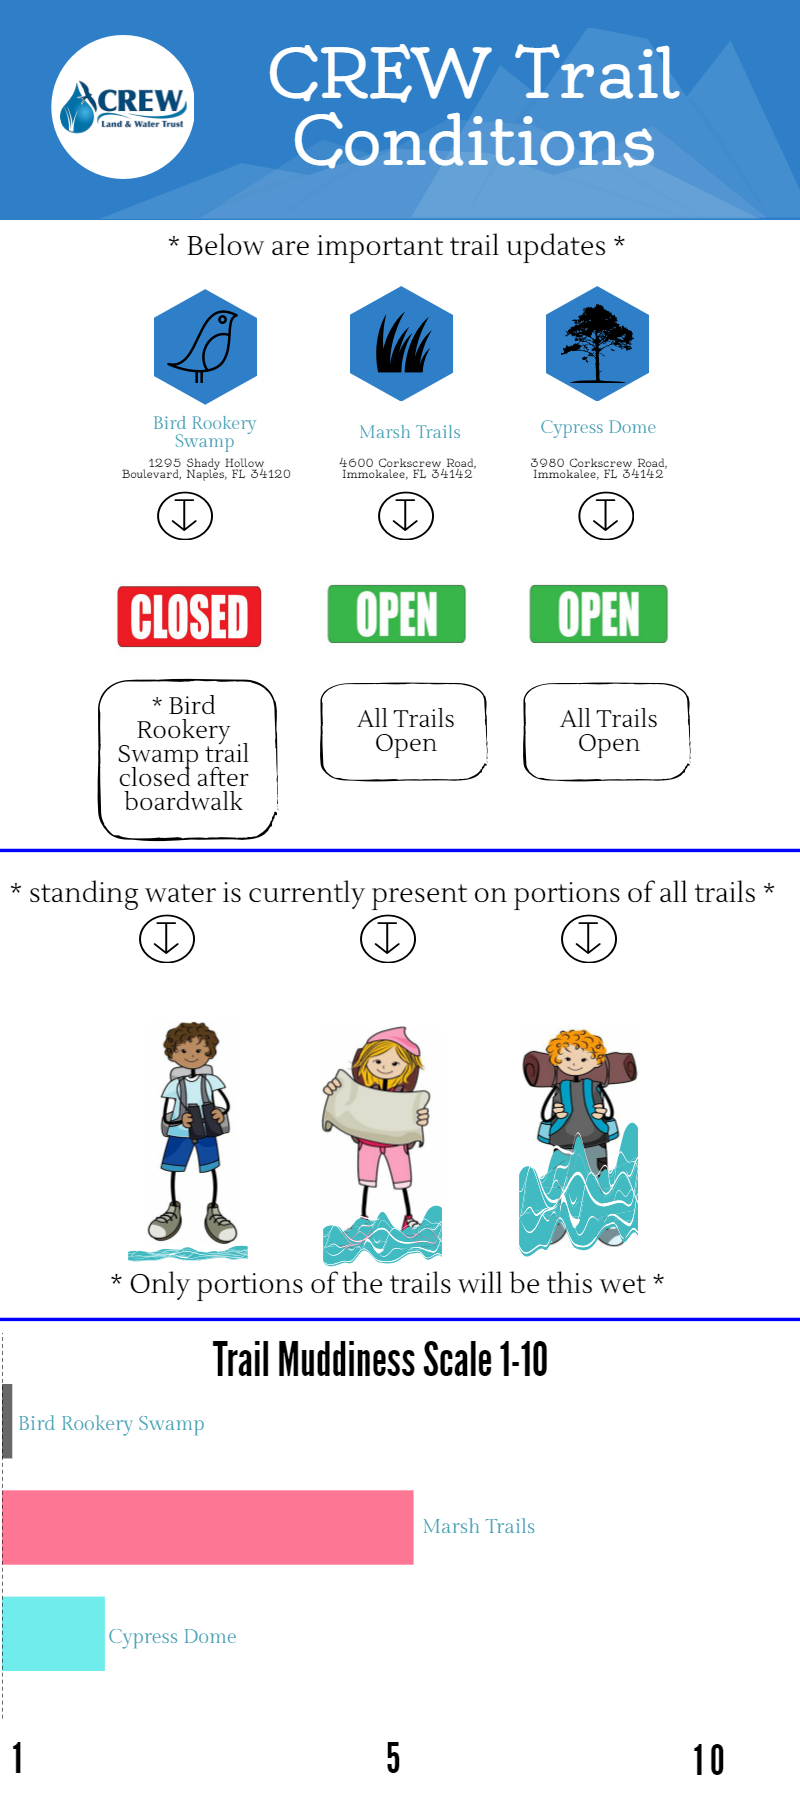 trail-conditions-weekly-closed-trail